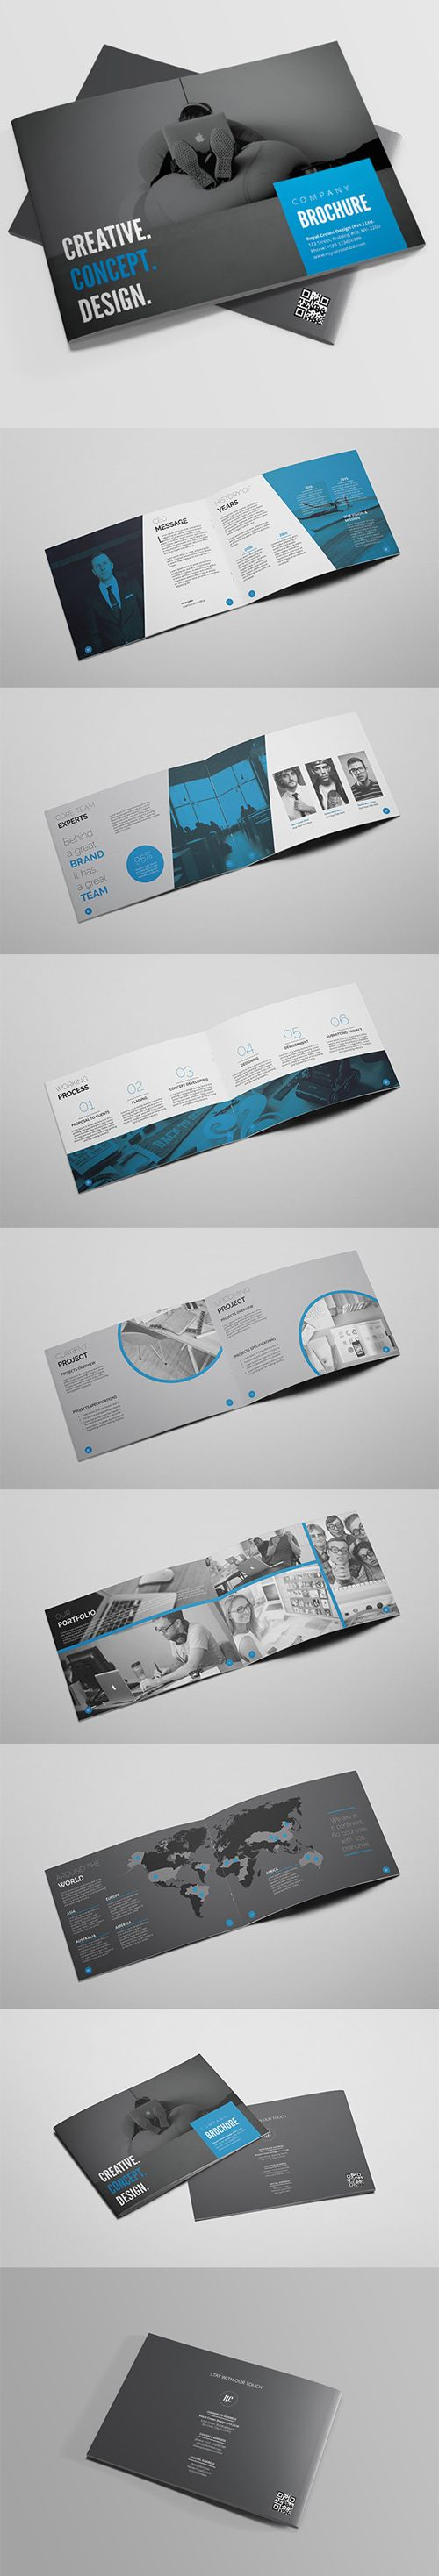 Best Design Brochure Inspiration Images On